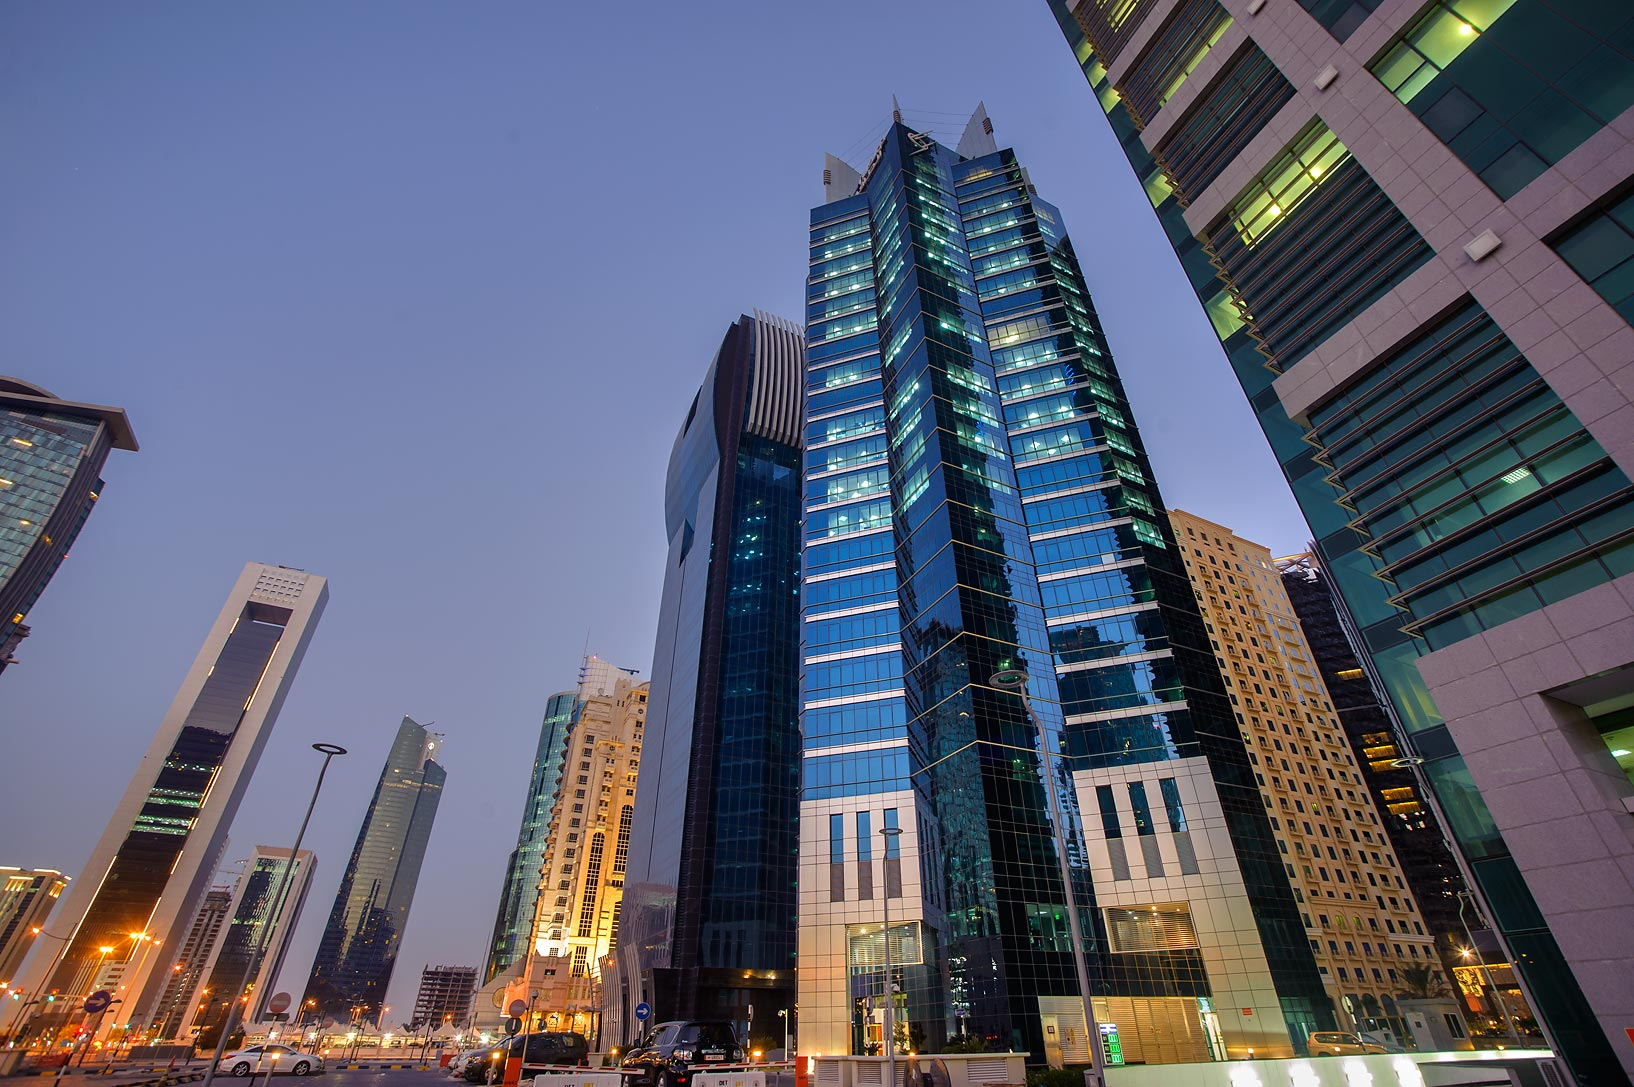 Conference Center St. in West Bay, opposite to City Center. Doha, Qatar